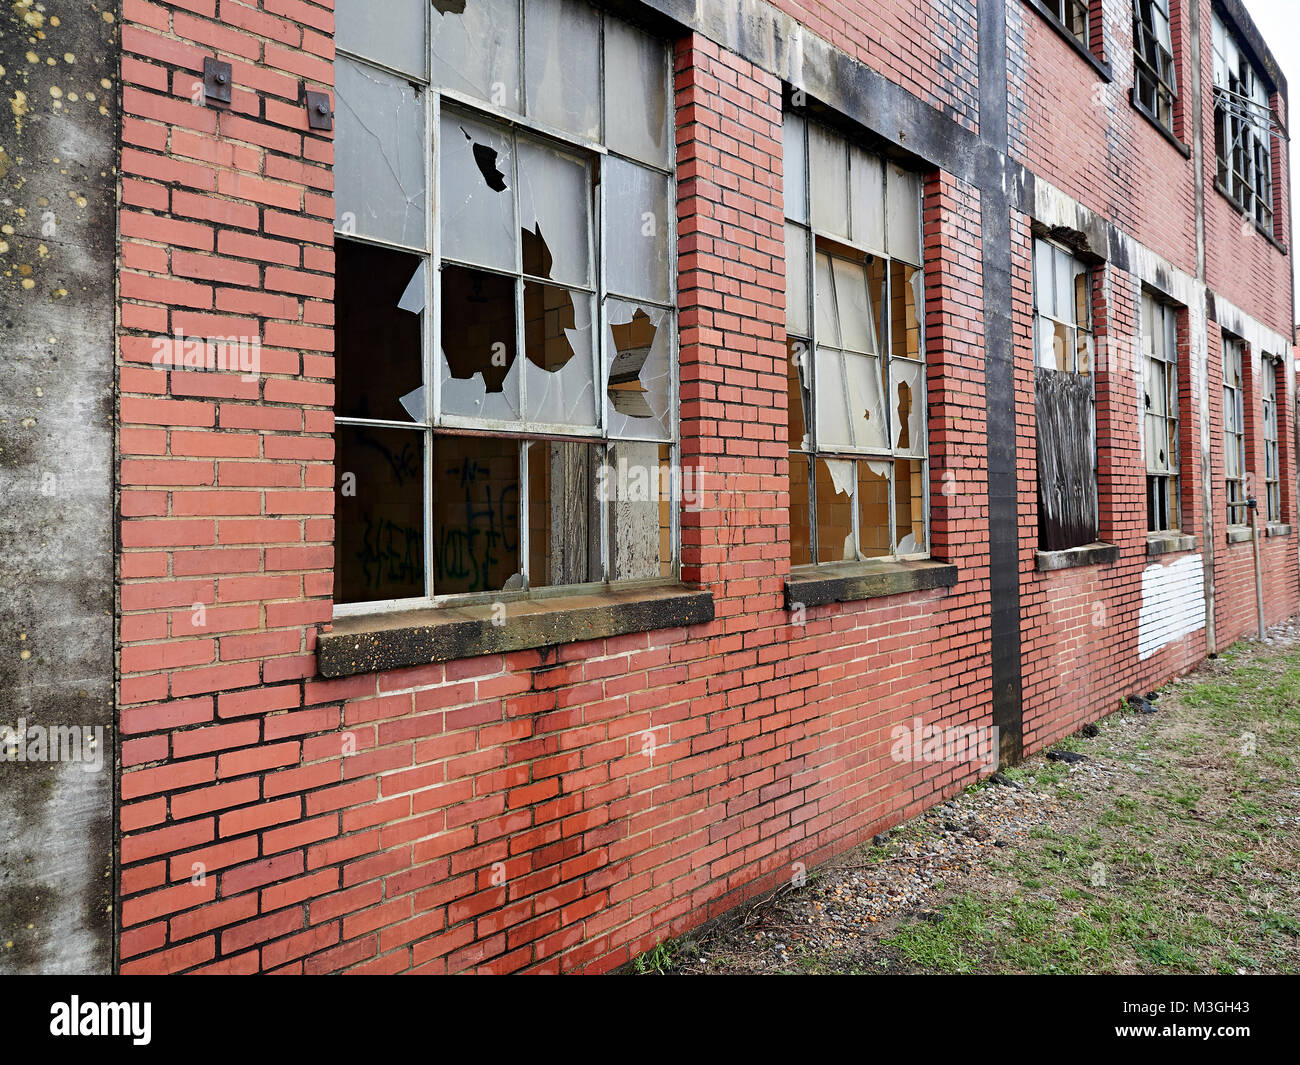 Exterior of abandoned brick building with broken windows in Montgomery Alabama, USA. - Stock Image